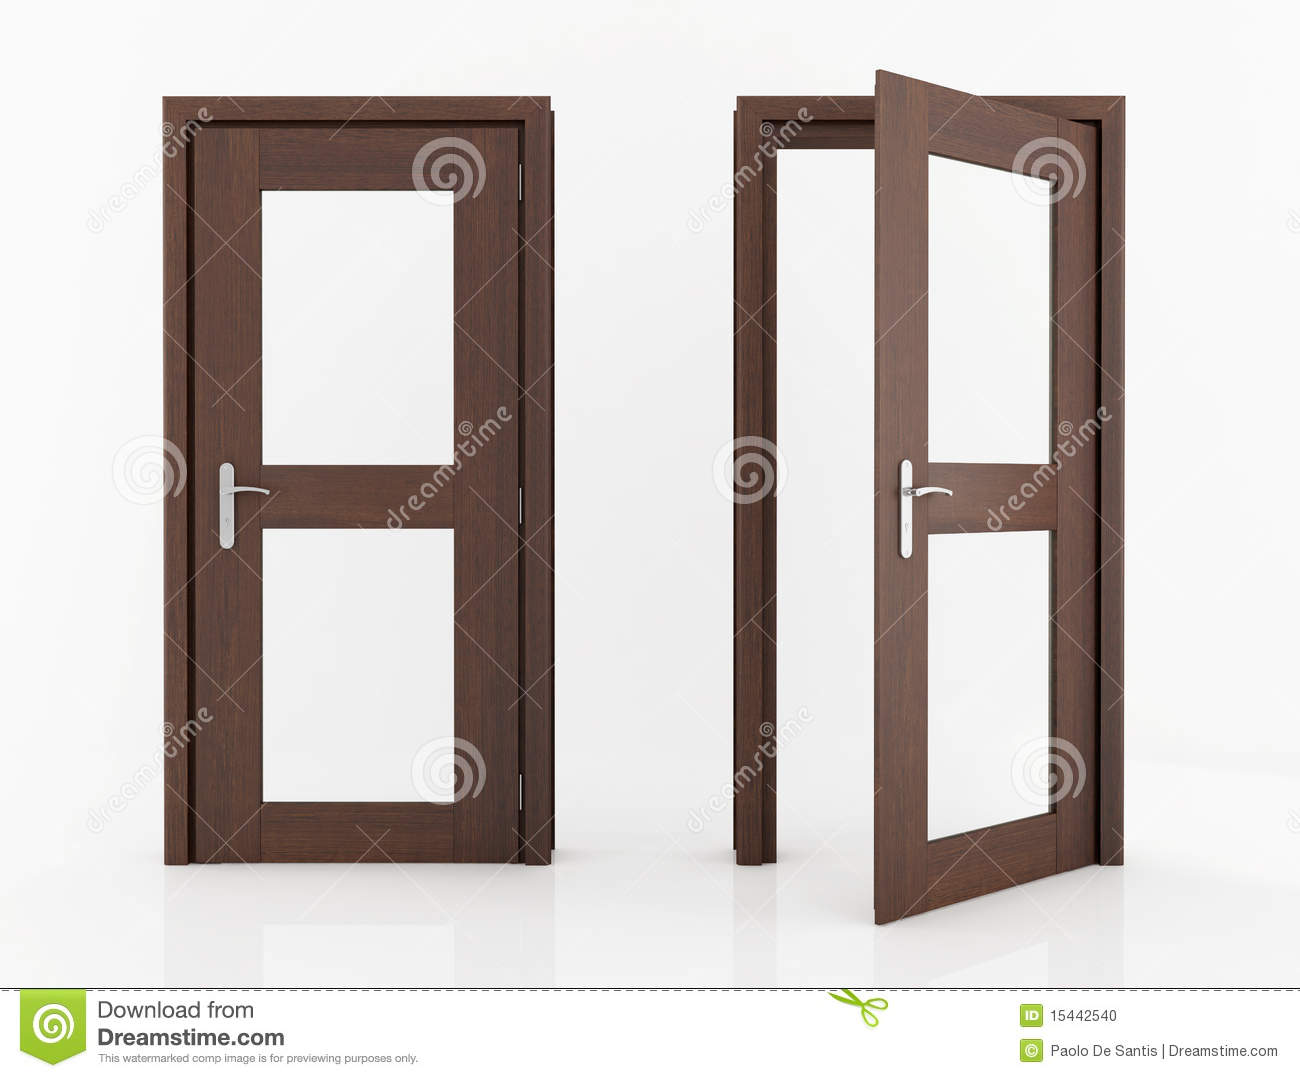 1078 #85A724 Wooden Dark Wood With Glass Isolated On White Rendering. picture/photo Wood And Glass Doors 40191300